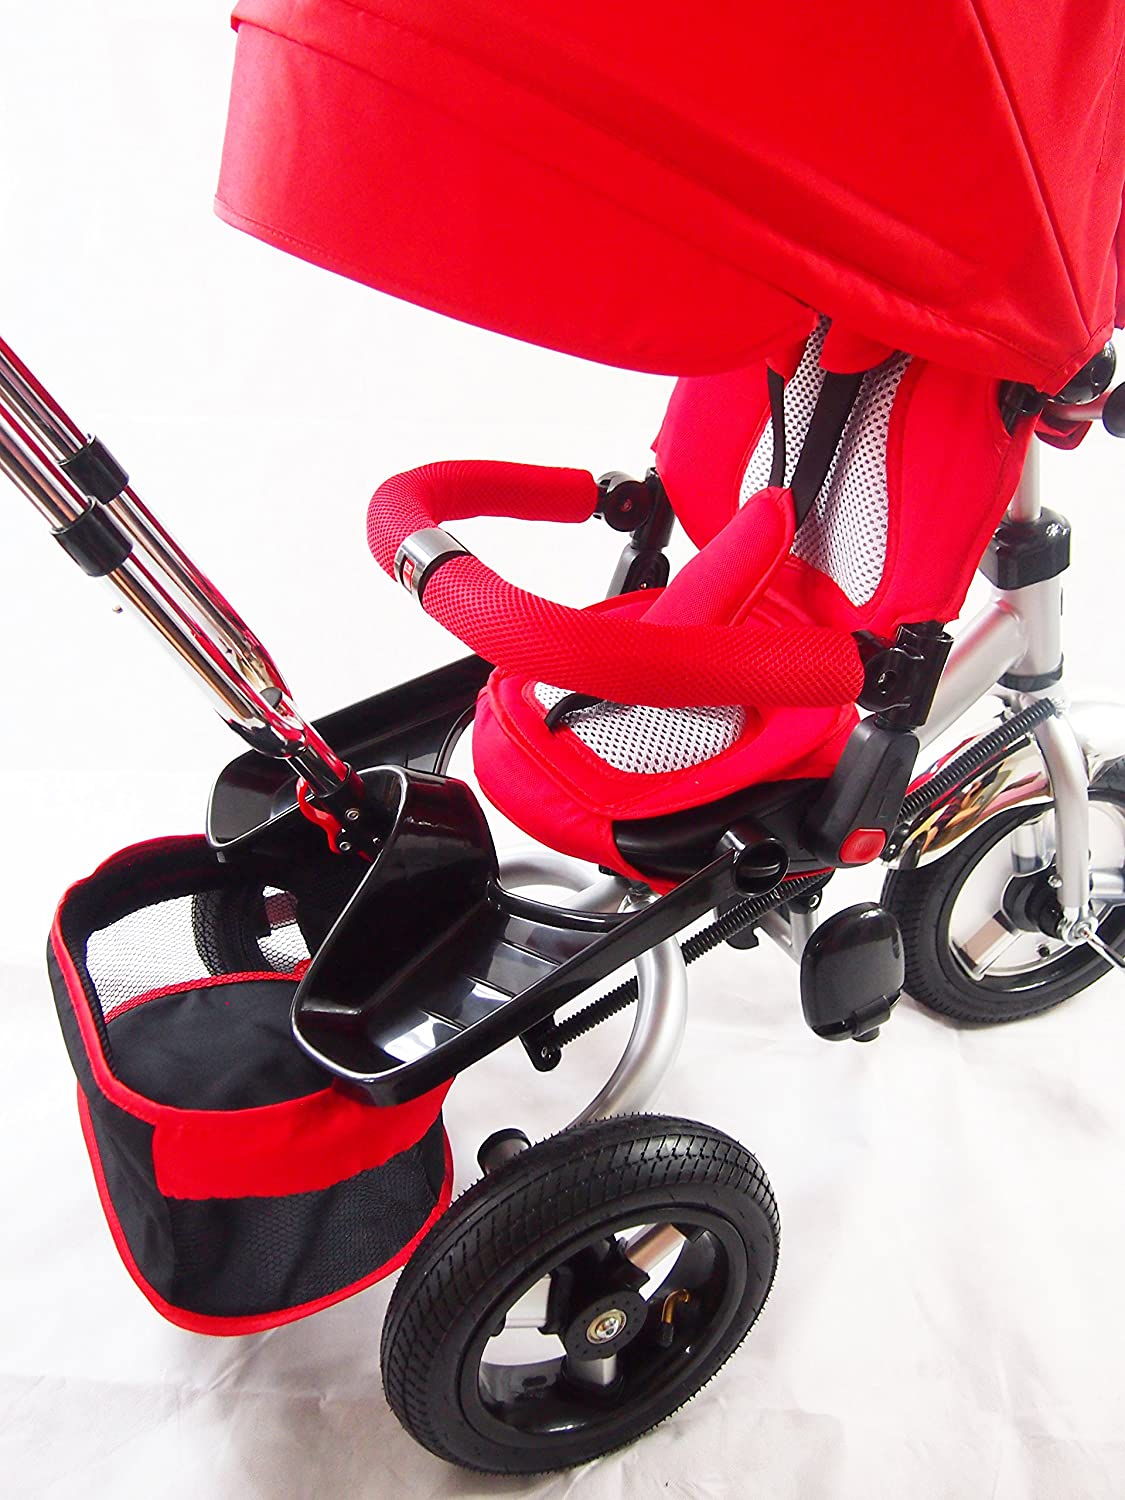 Accessory for Scooters and Motorcycles with Rubber Wheels Dantoy Kids Sit /& Ride Toy Trailer Made in Denmark